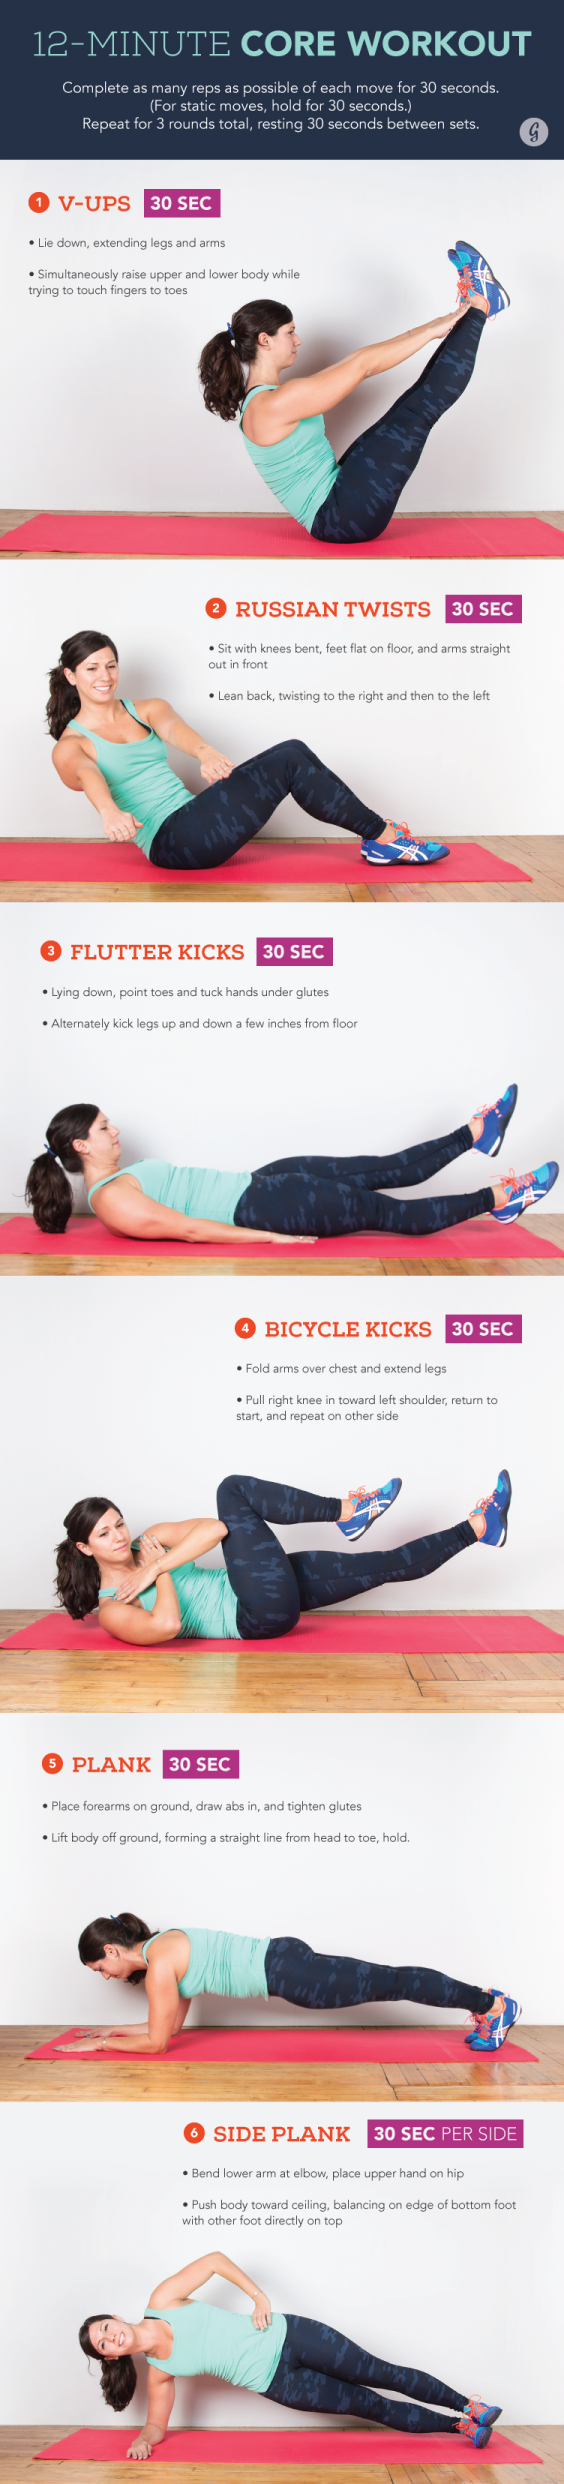 Best Yoga Moves To Build Muscle And Core Strength